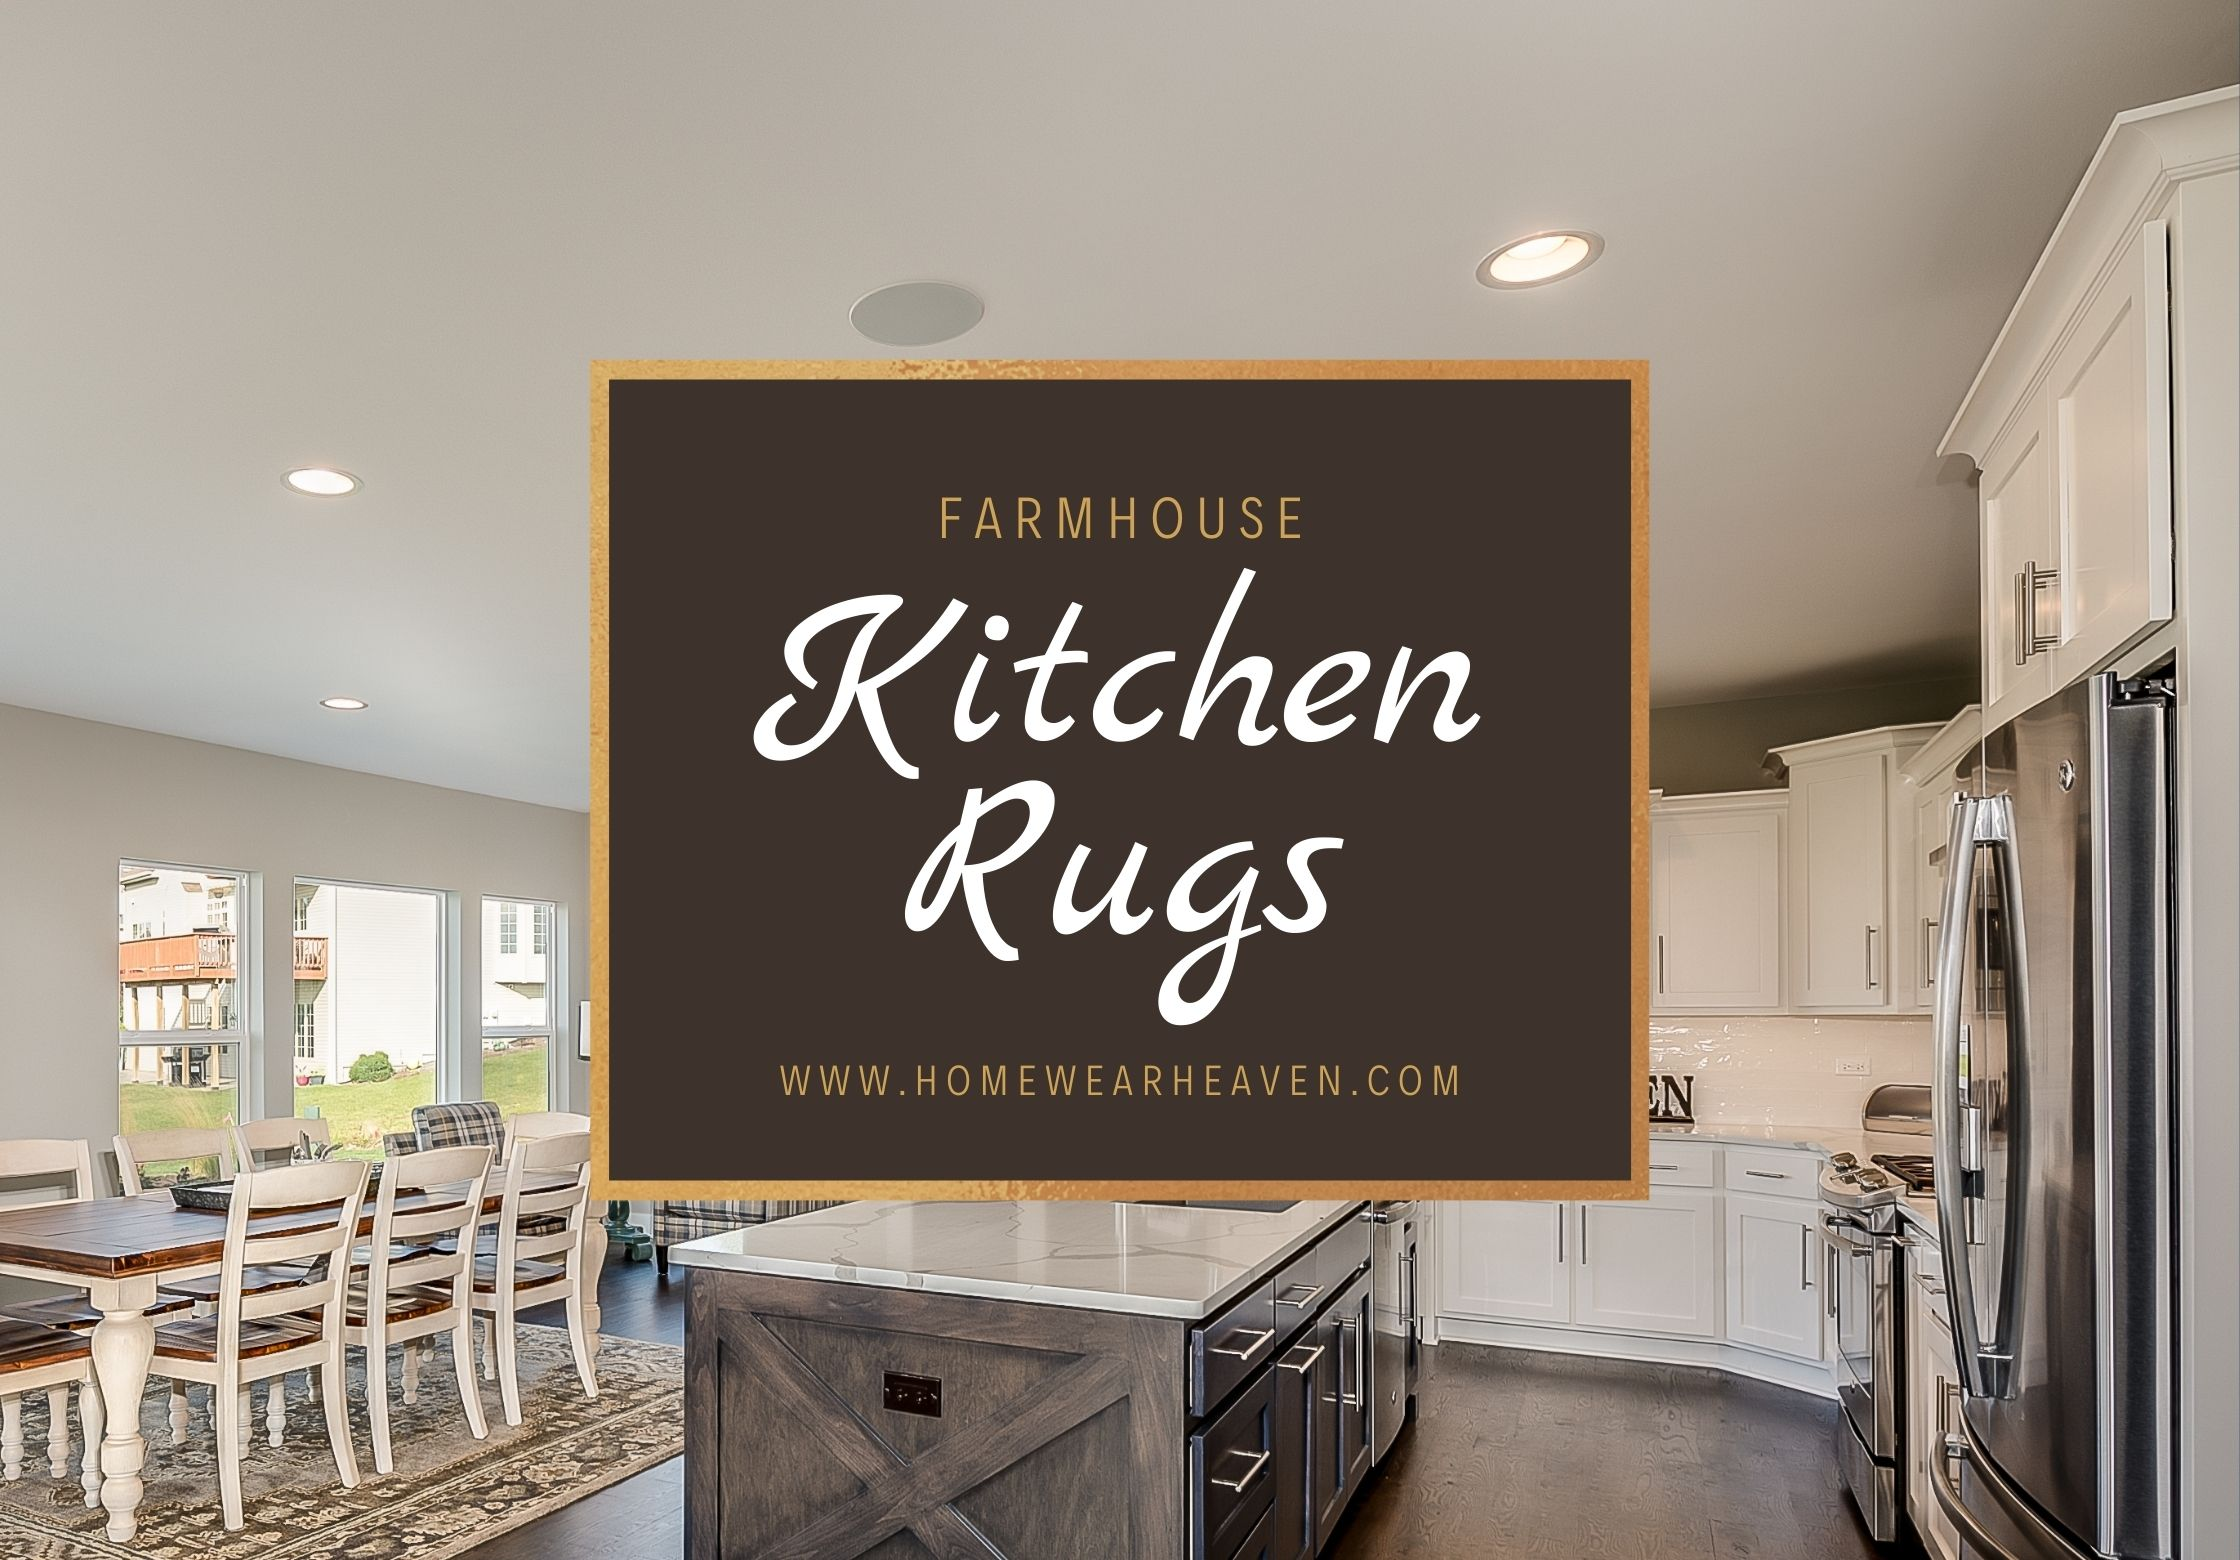 Top 10 Best Farmhouse Kitchen Rugs And Mats in 2021